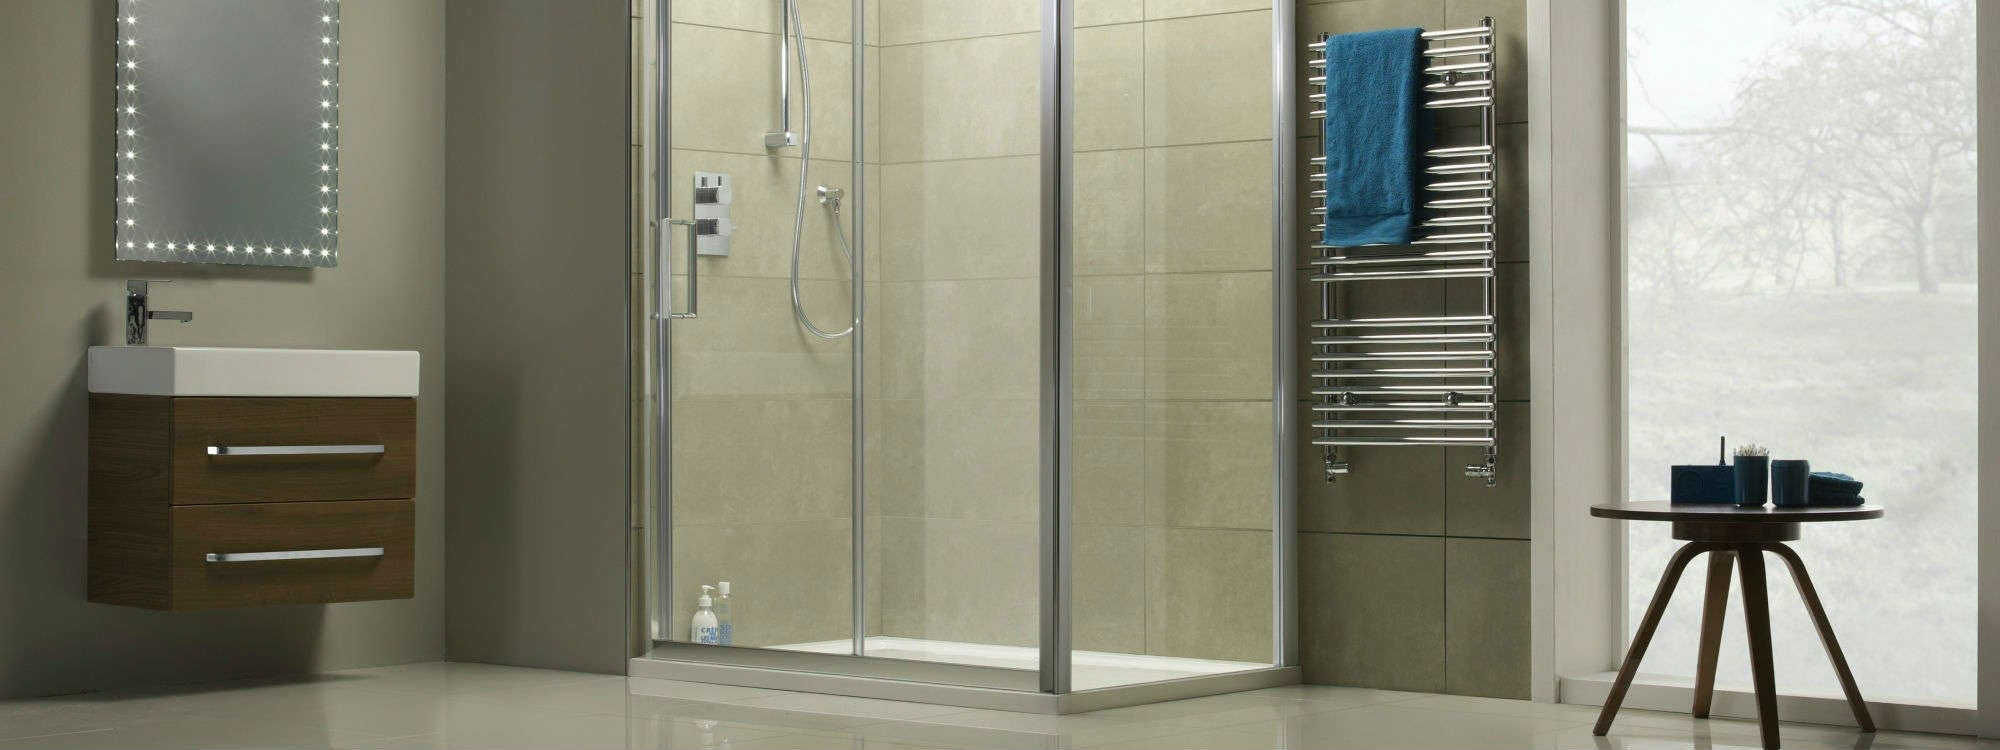 Often bespoke, to meet individual wants and needs, walk-in shower enclosures can easily lend themselves to many popular styles while adding that 'wow' factor to your home.